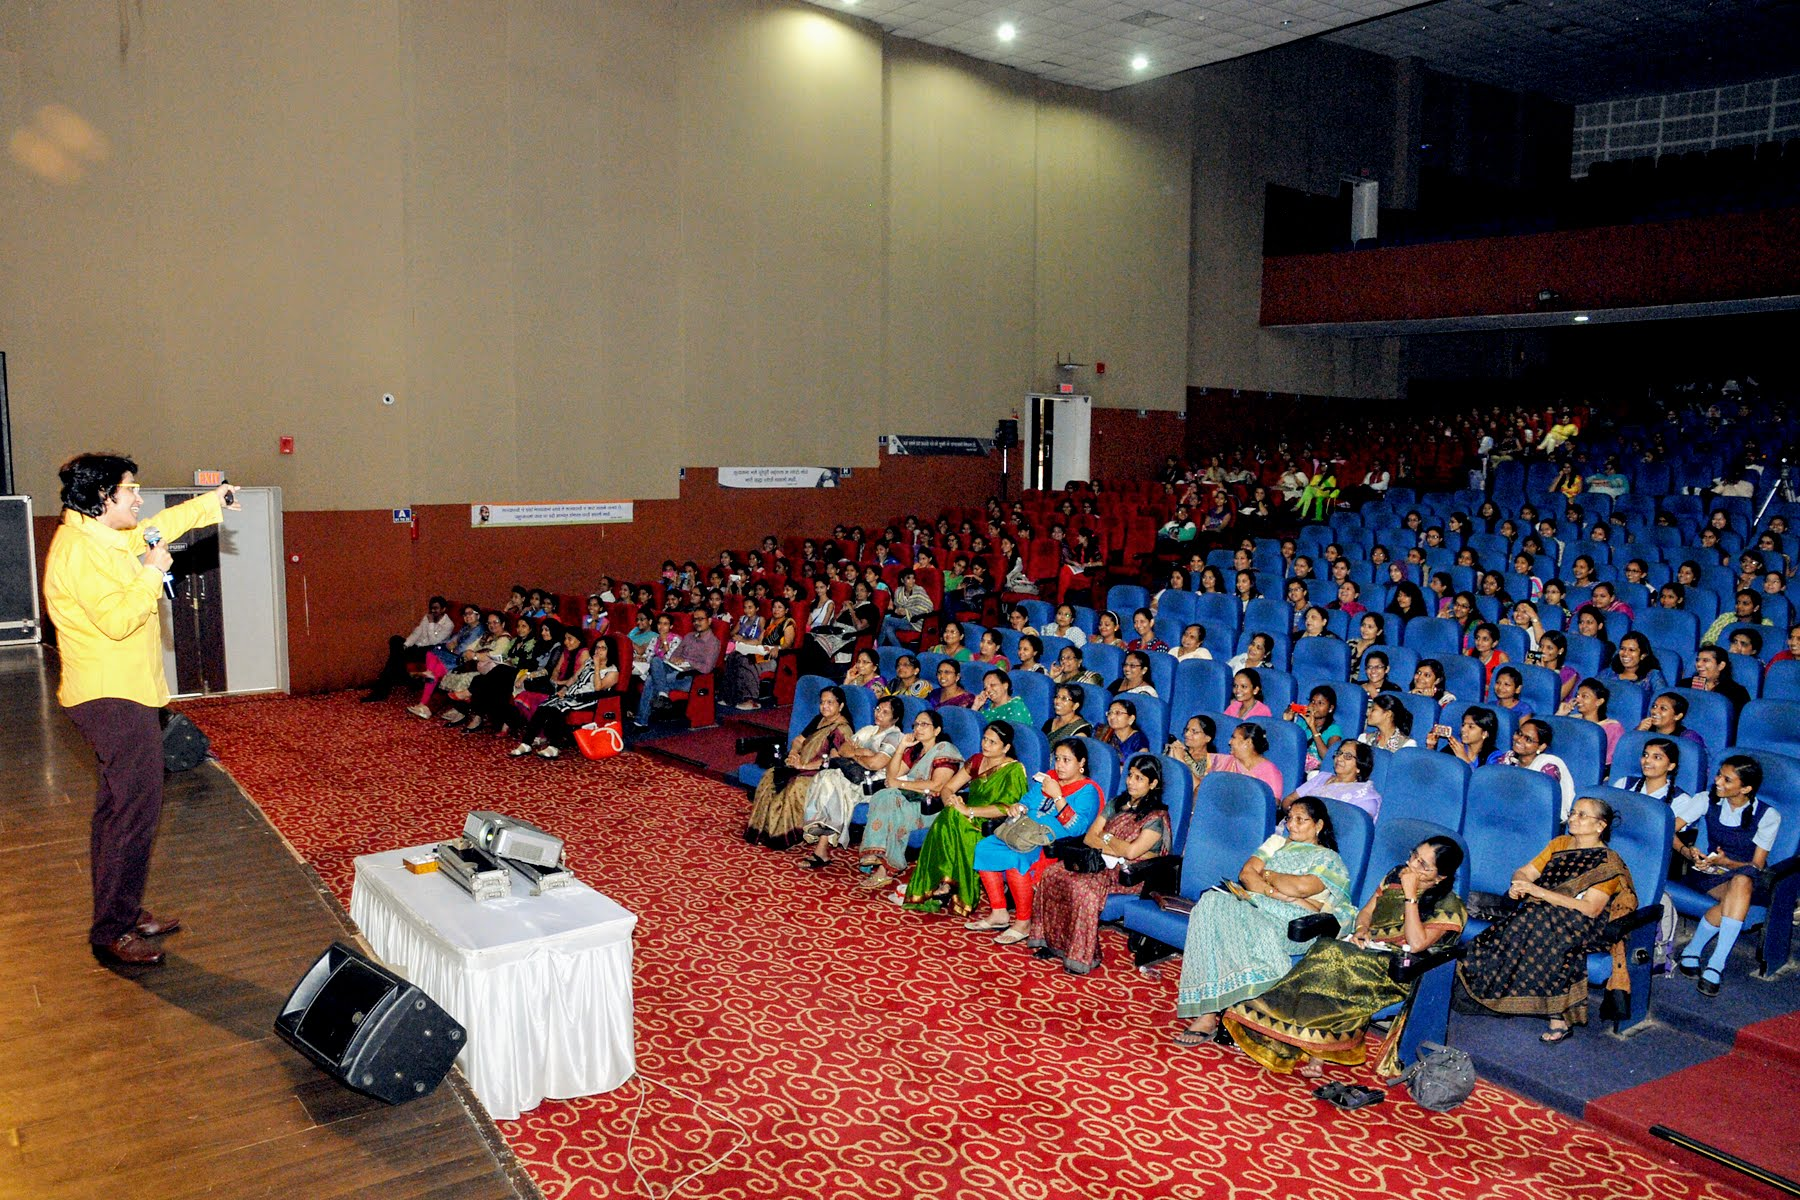 Social activist Ruzan Khambatta speaking on women's empowerment. Photo courtesy: Ruzan Khambatta